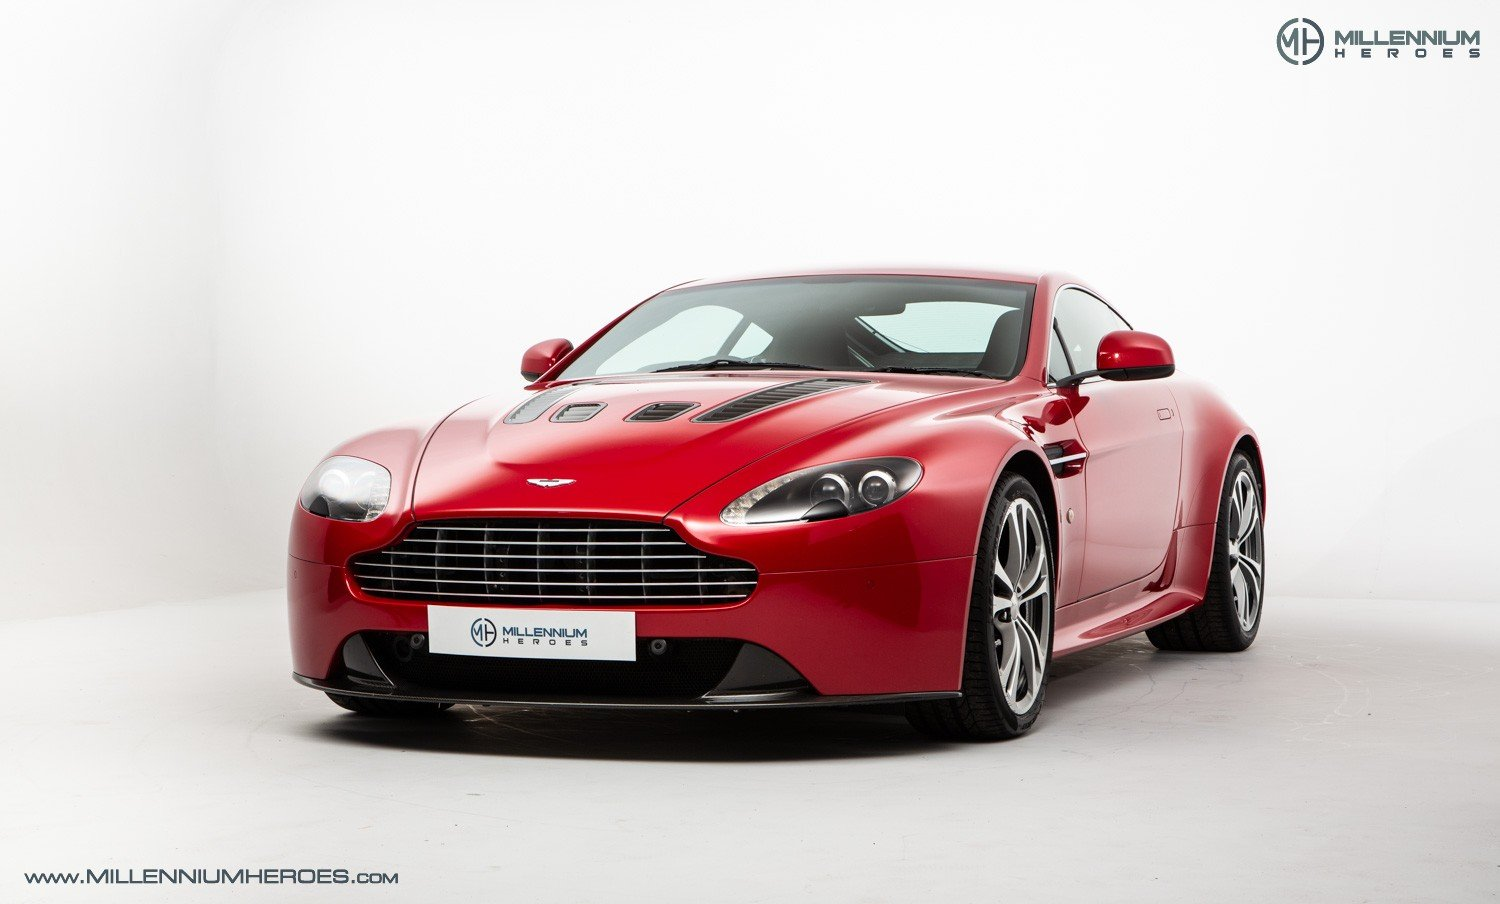 2010 Aston Martin V12 Vantage Aston Martin V12 Vantage Manual Special Order Fire Red B O Sound Carbon Buckets Uk Rhd Classic Driver Market